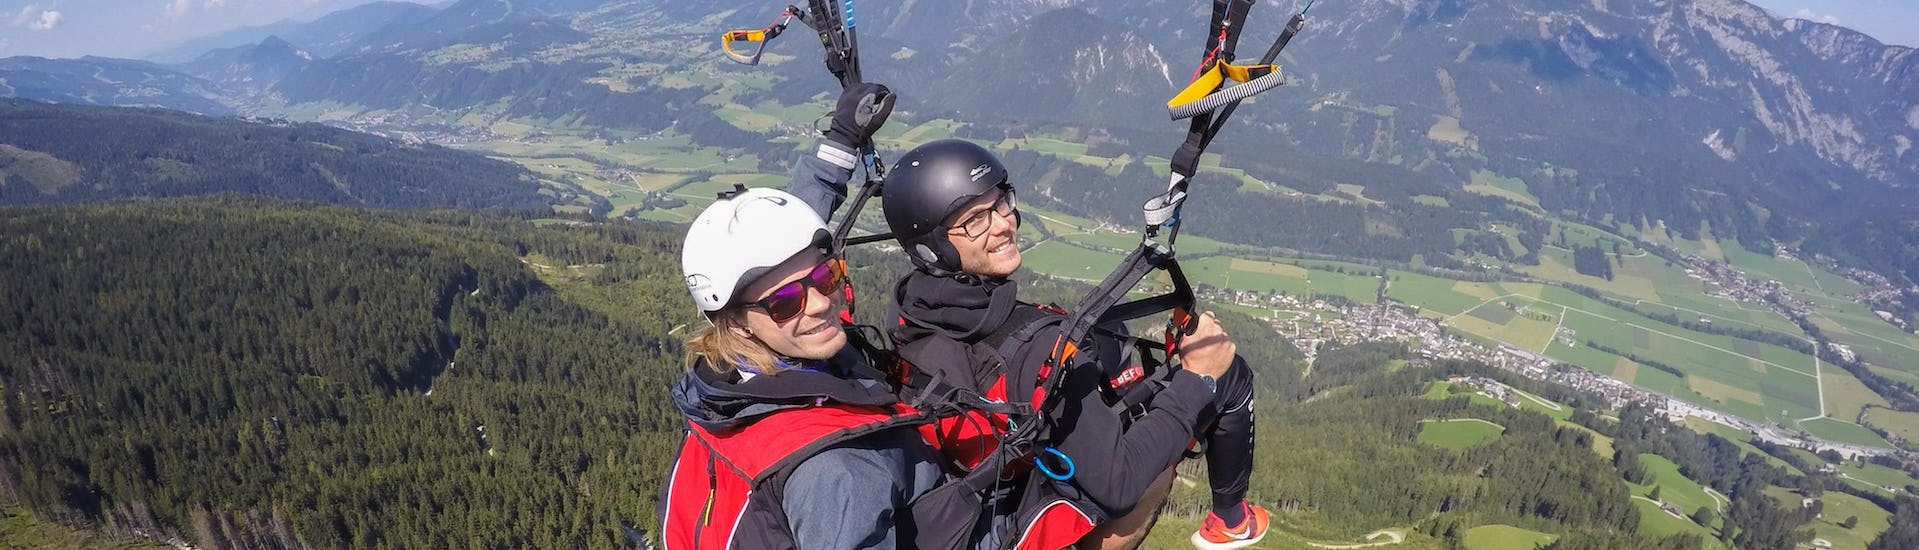 Tandem Paragliding from Hauser Kaibling